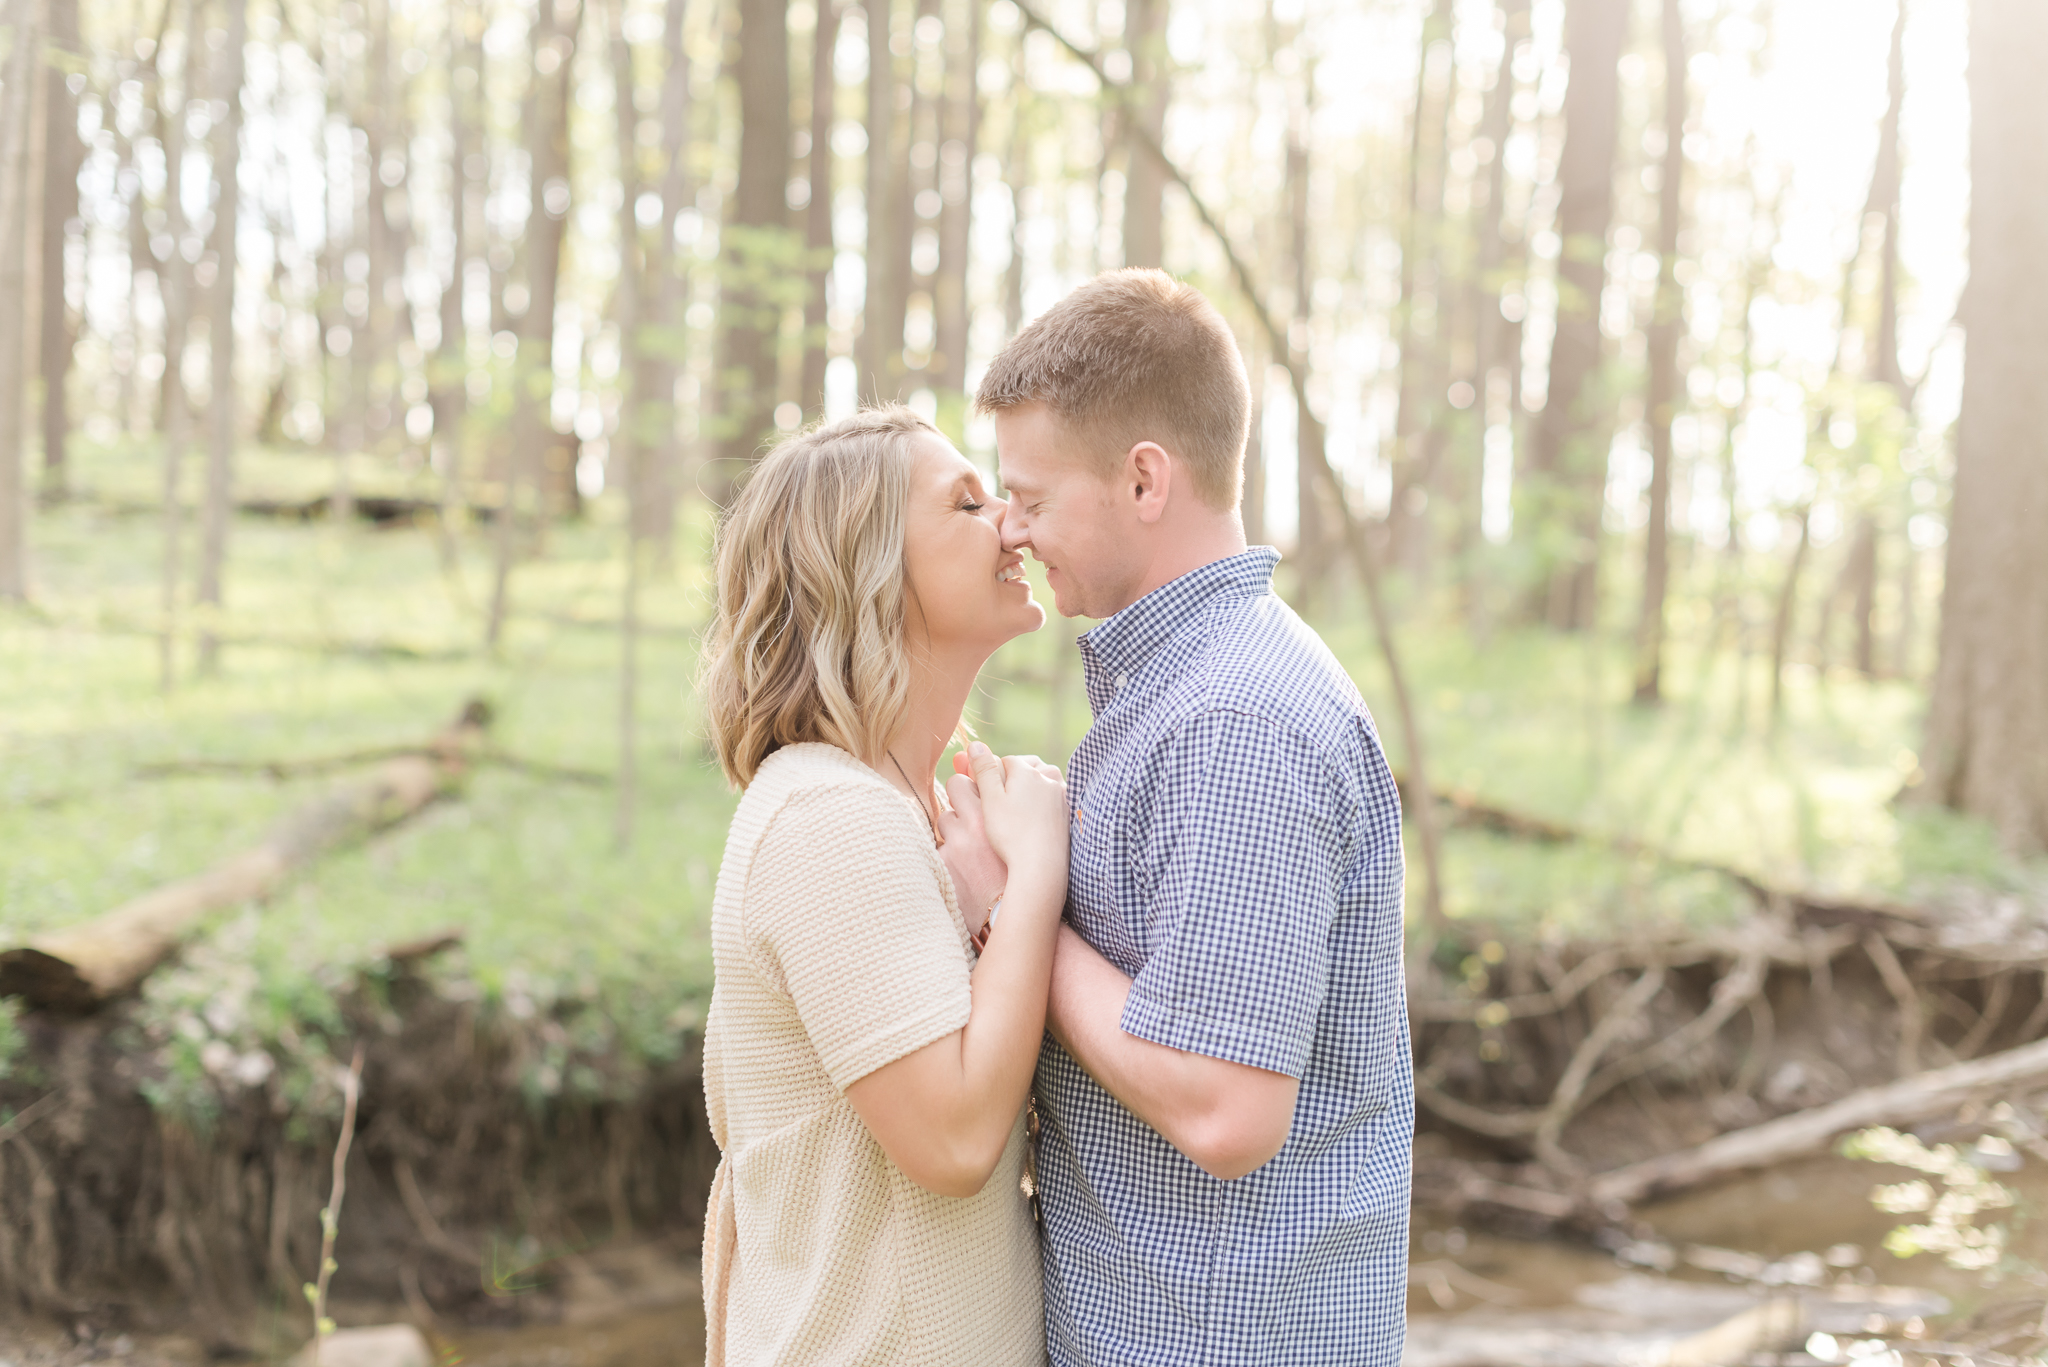 Richie Woods Nature Preserve and Mustard Seed Gardens Engagement Session Wedding Photos-25.jpg